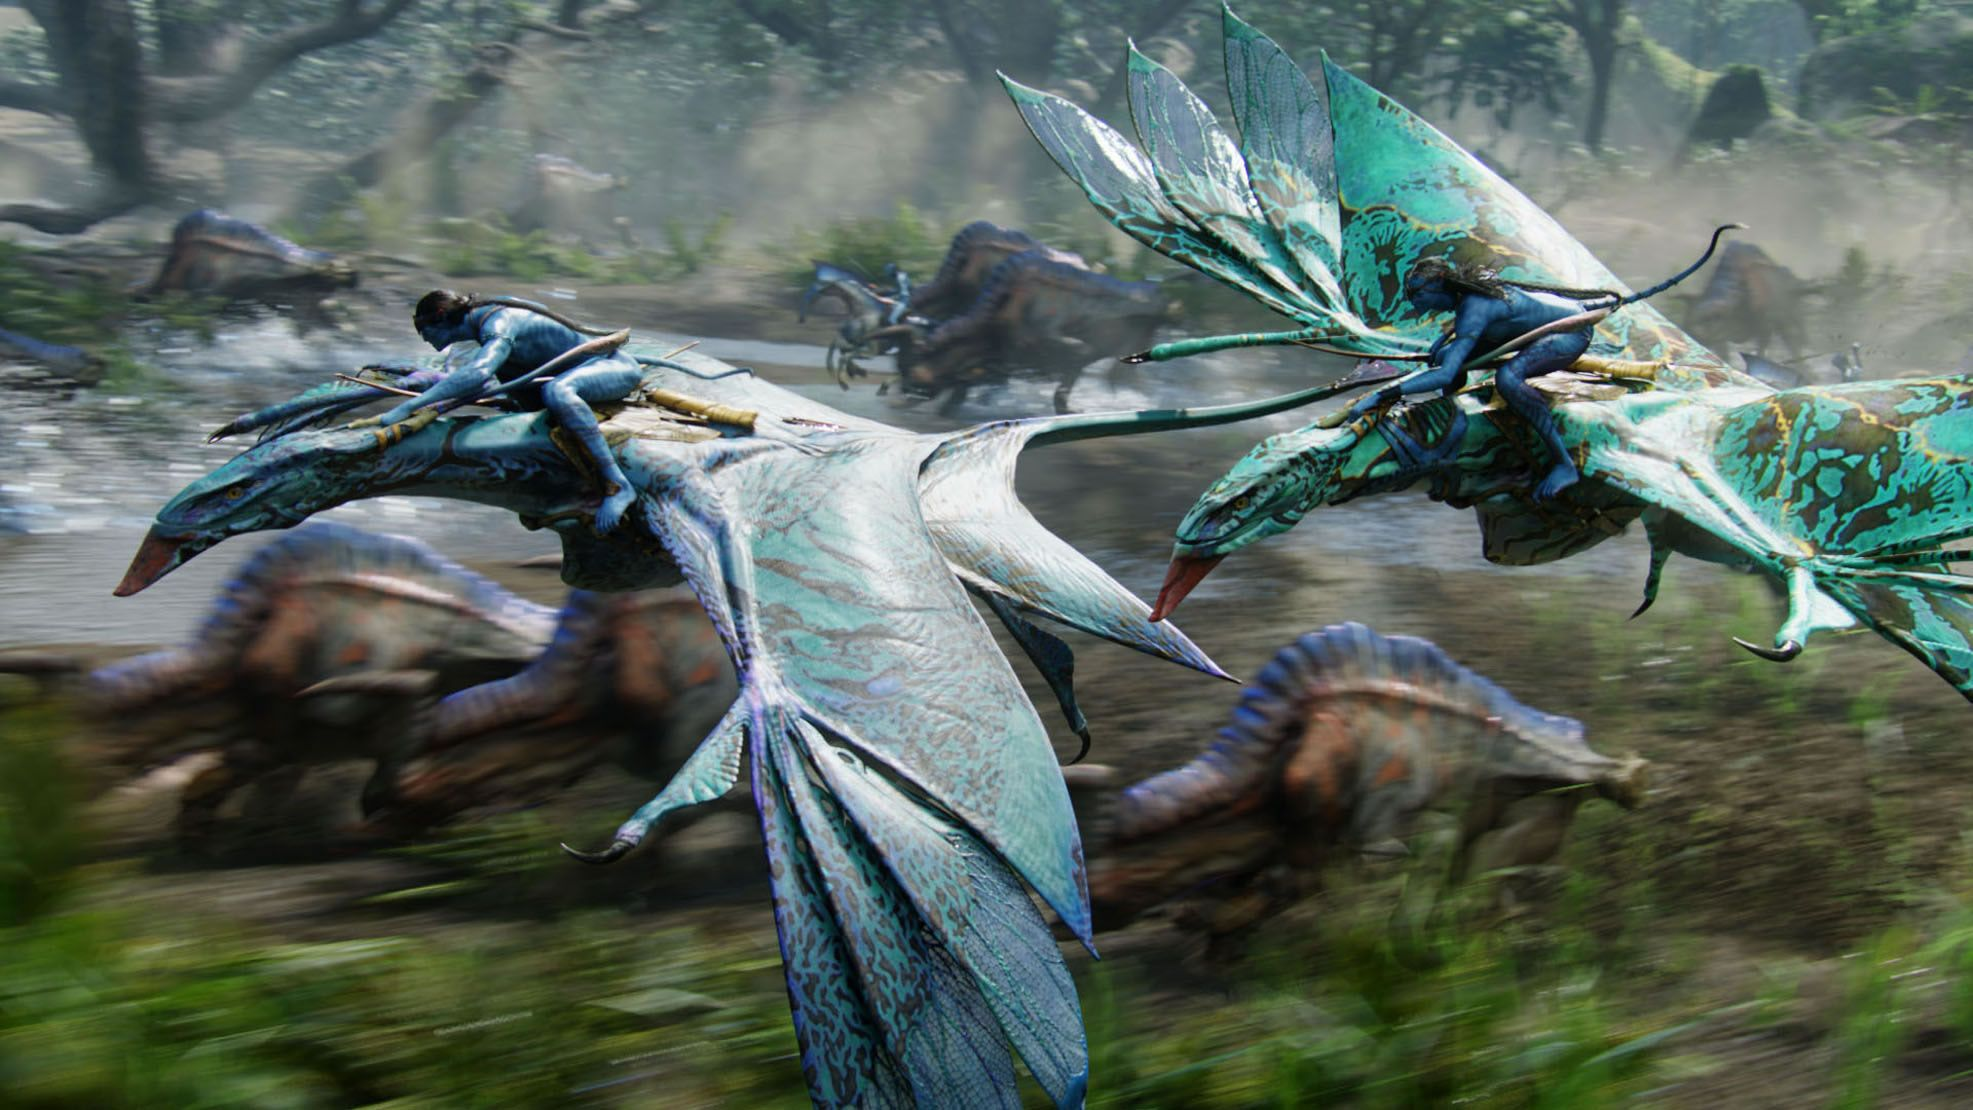 two new images from avatar: special editon | collider